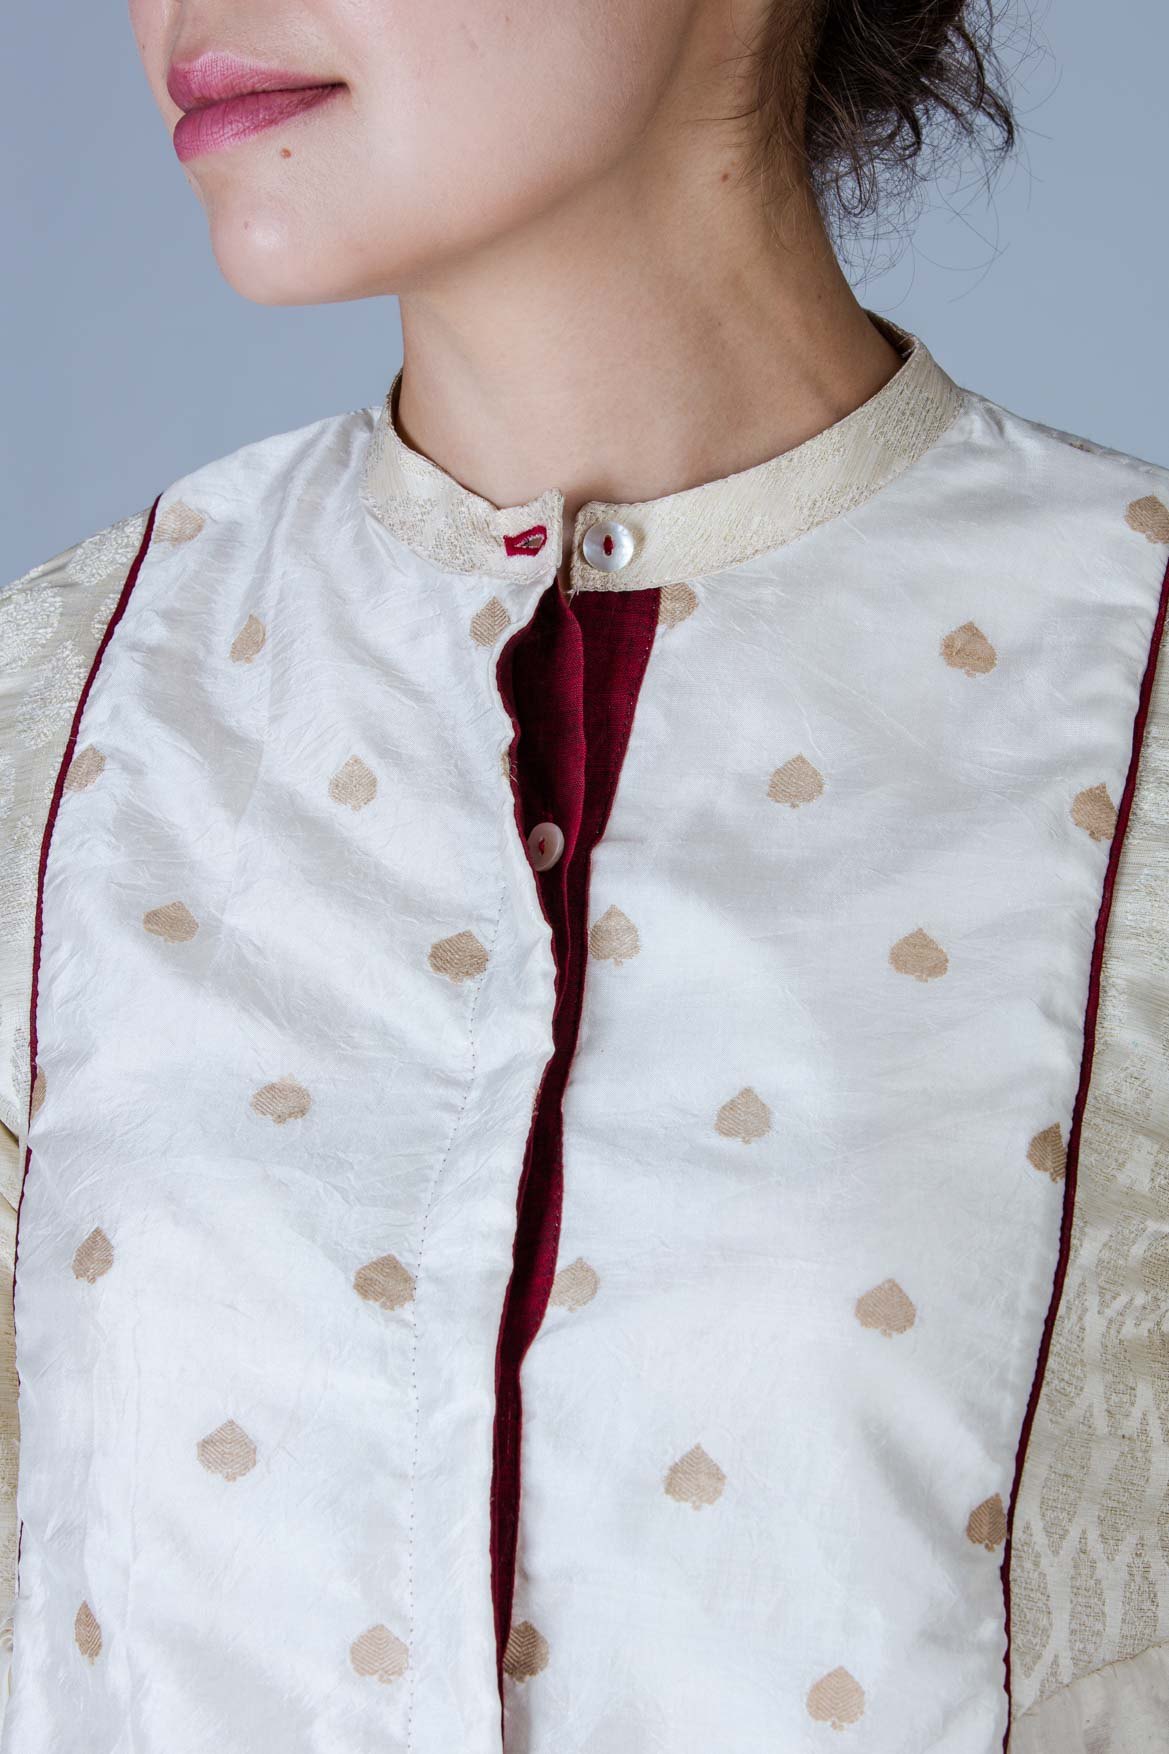 Composed silk Jacket Top - KEDIYA - Upasana Design Studio